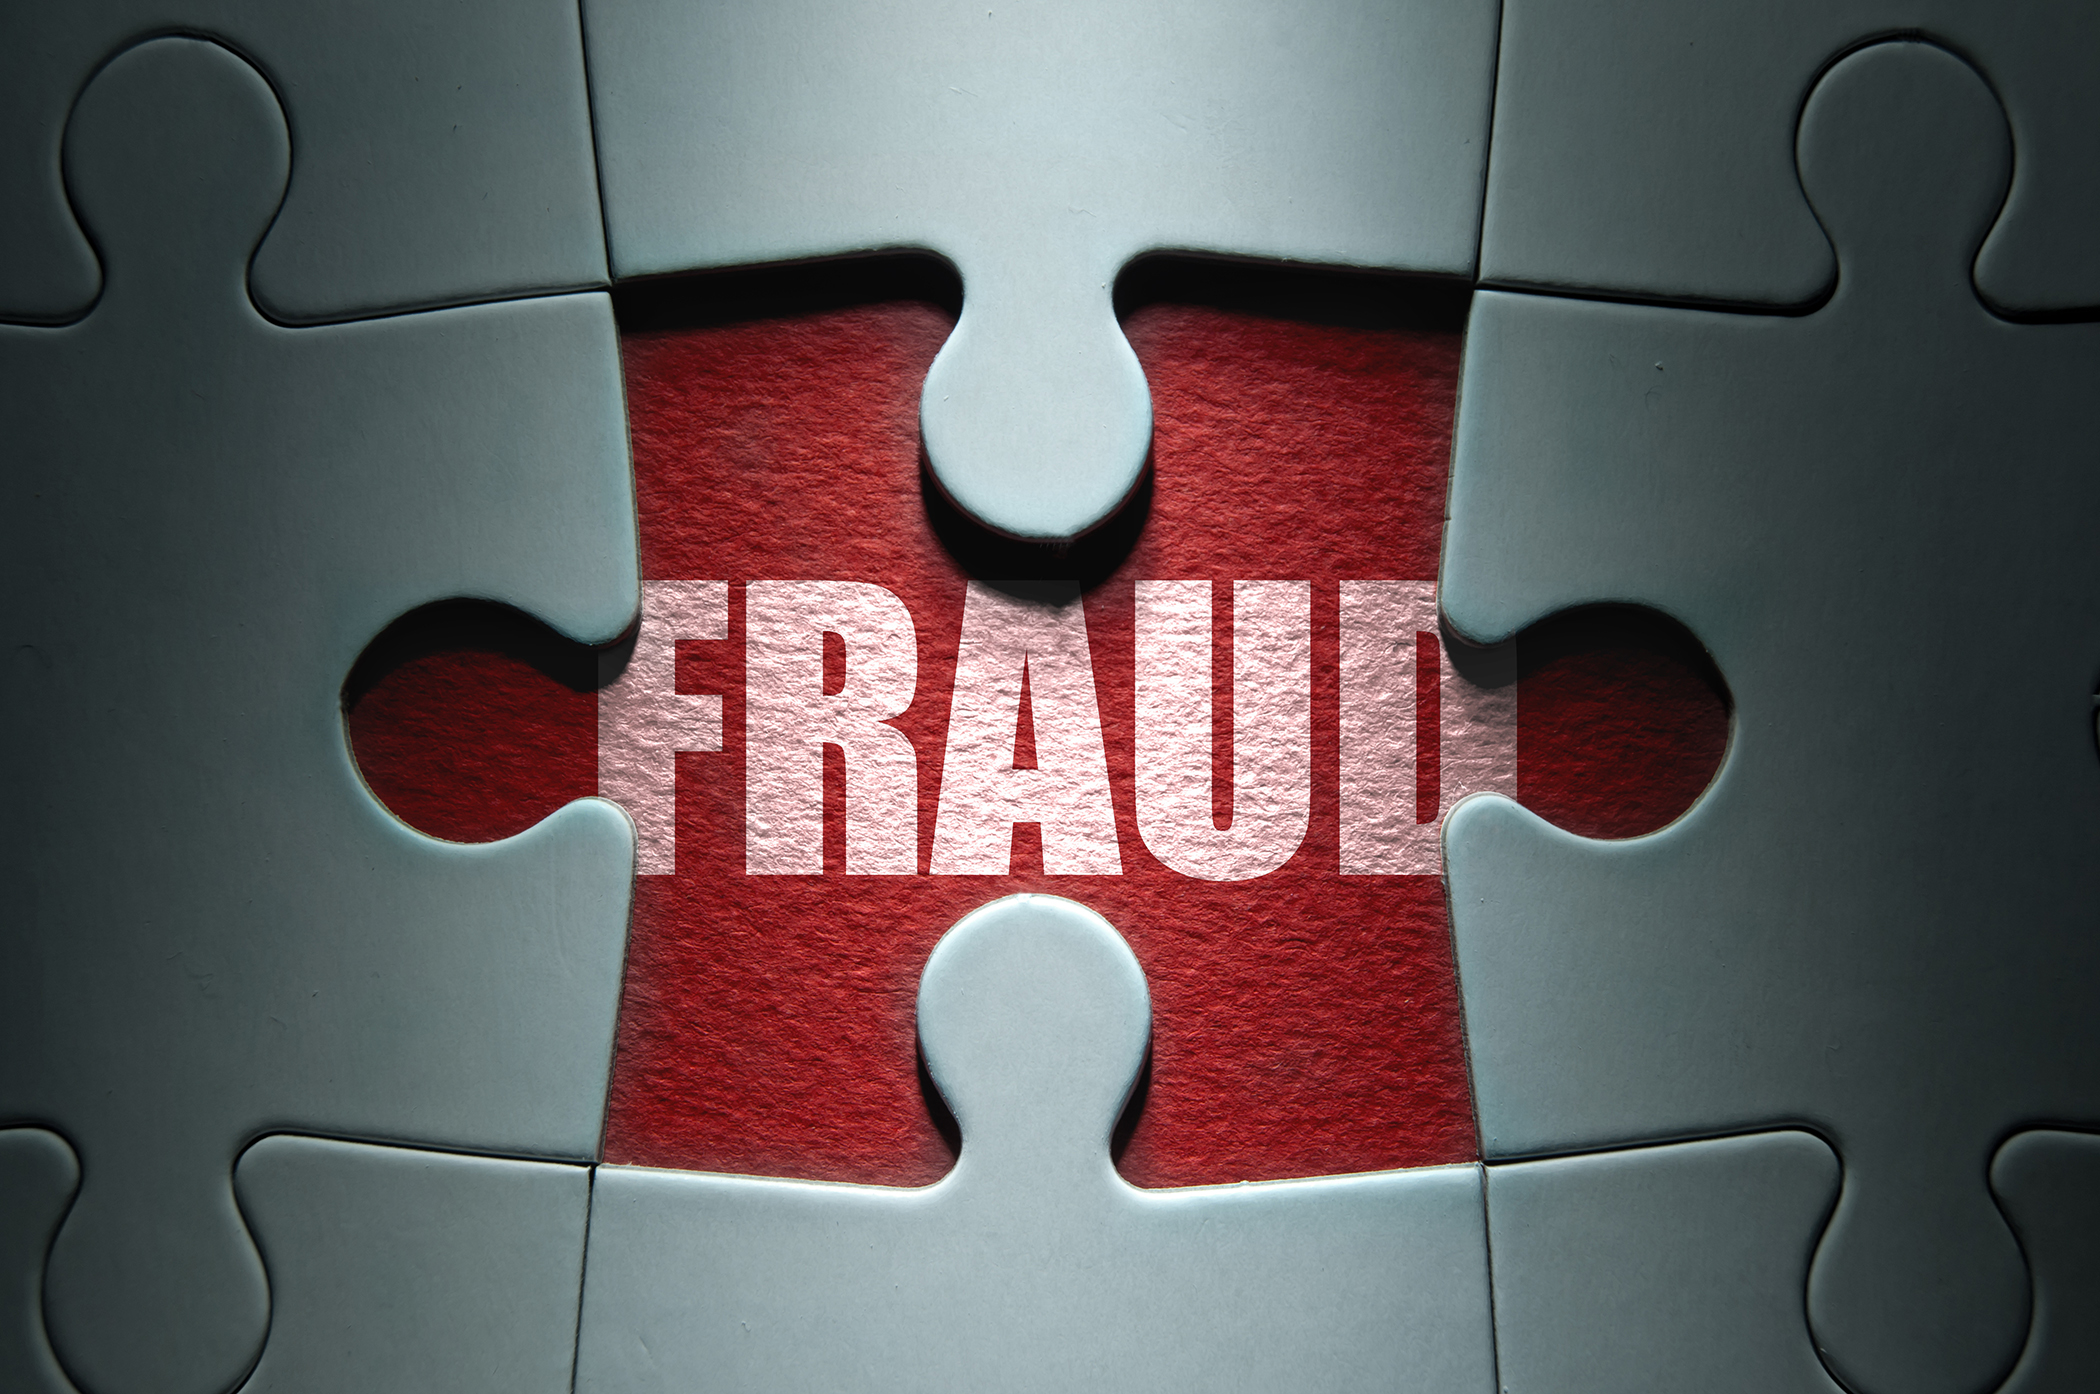 Former California Agent Sentenced for Stealing $100K in Premiums and Investments